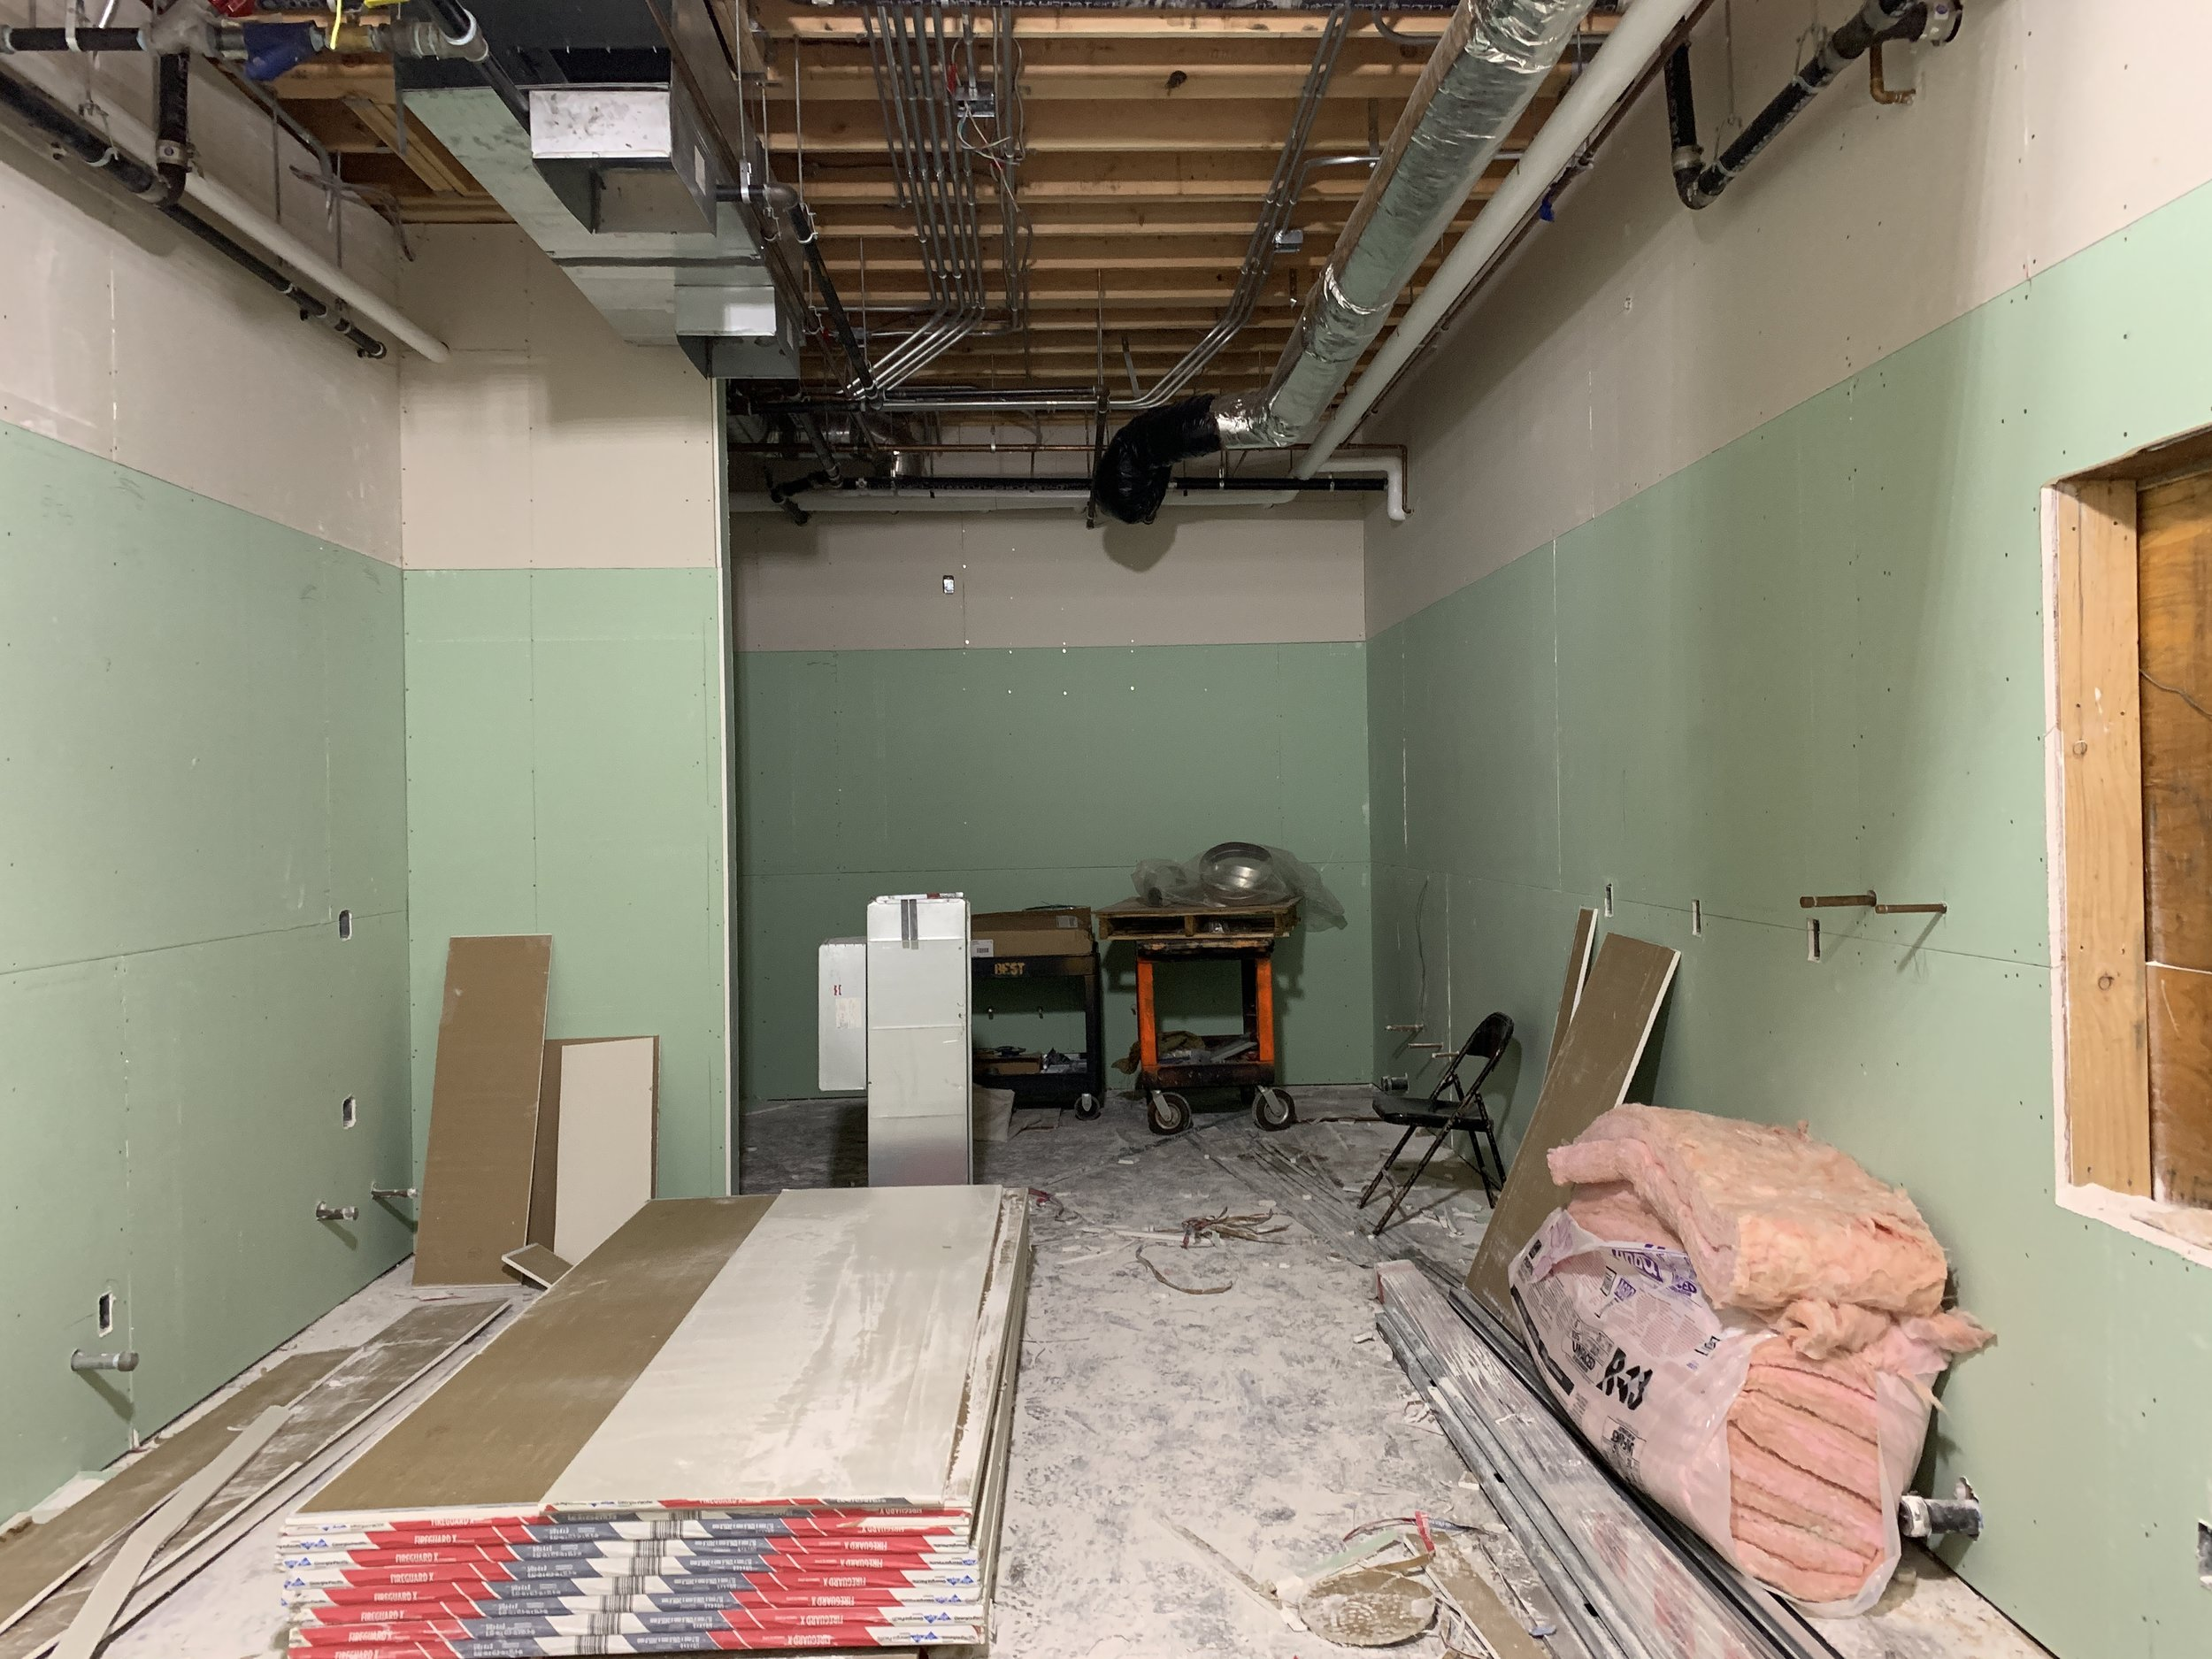 2-27-2019 Kitchen drywall is up